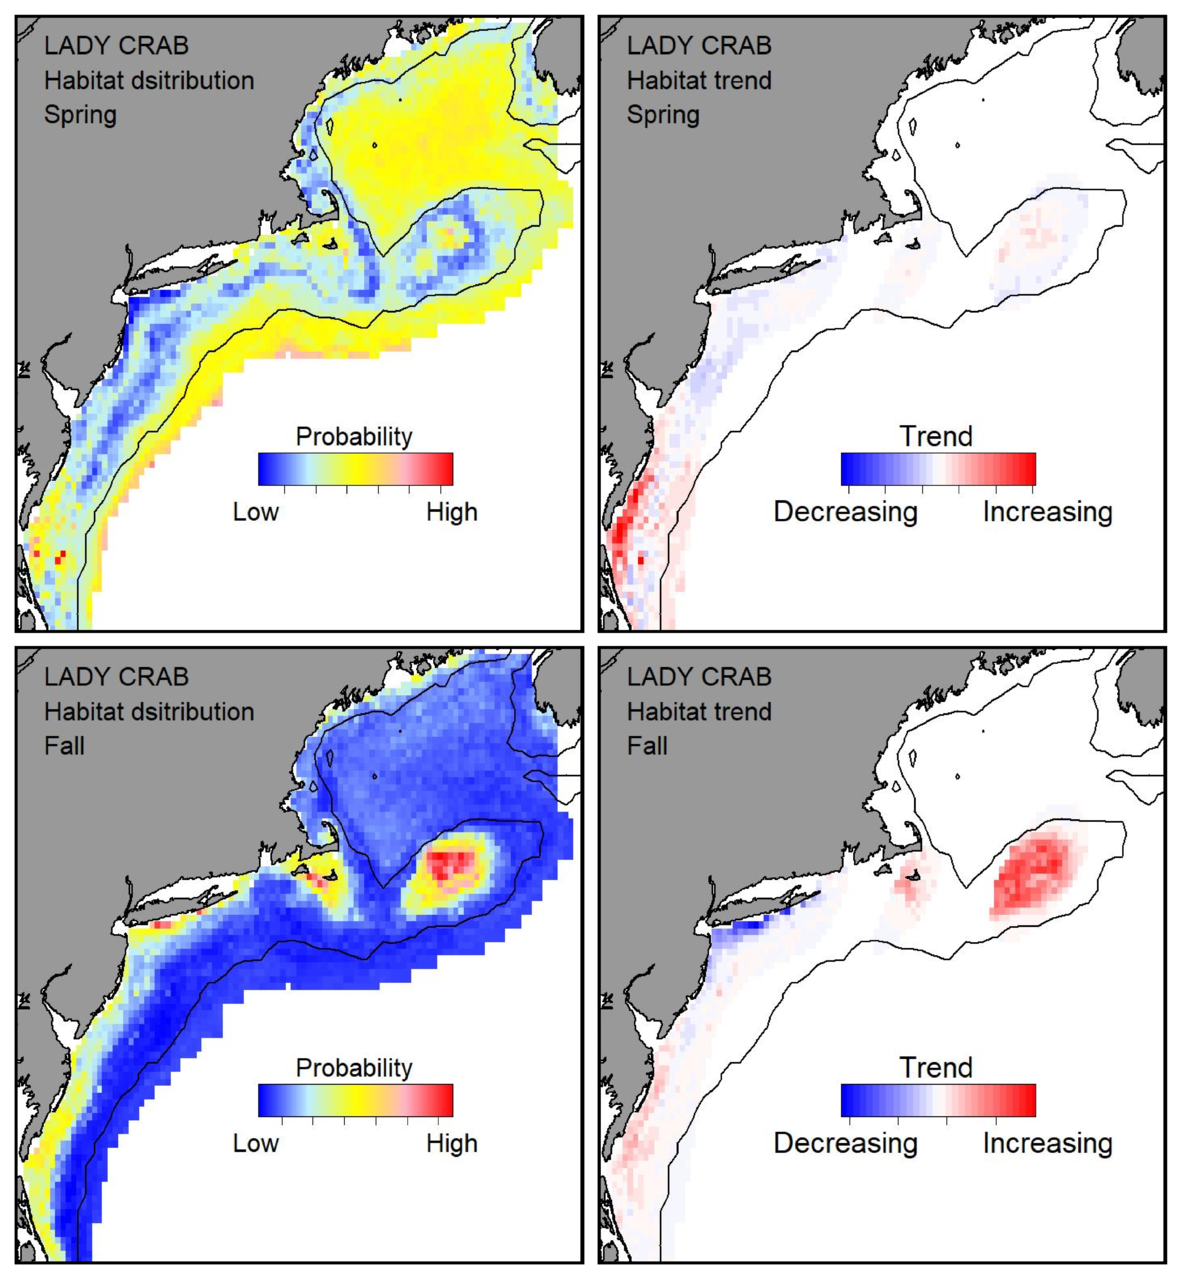 Probable habitat distribution for lady crab showing the highest concentration and increasing trend in the Gulf of Maine during the spring. Bottom row: Probable habitat distribution for lady crab showing the highest concentration and increasing trend in the Gulf of Maine during the fall.